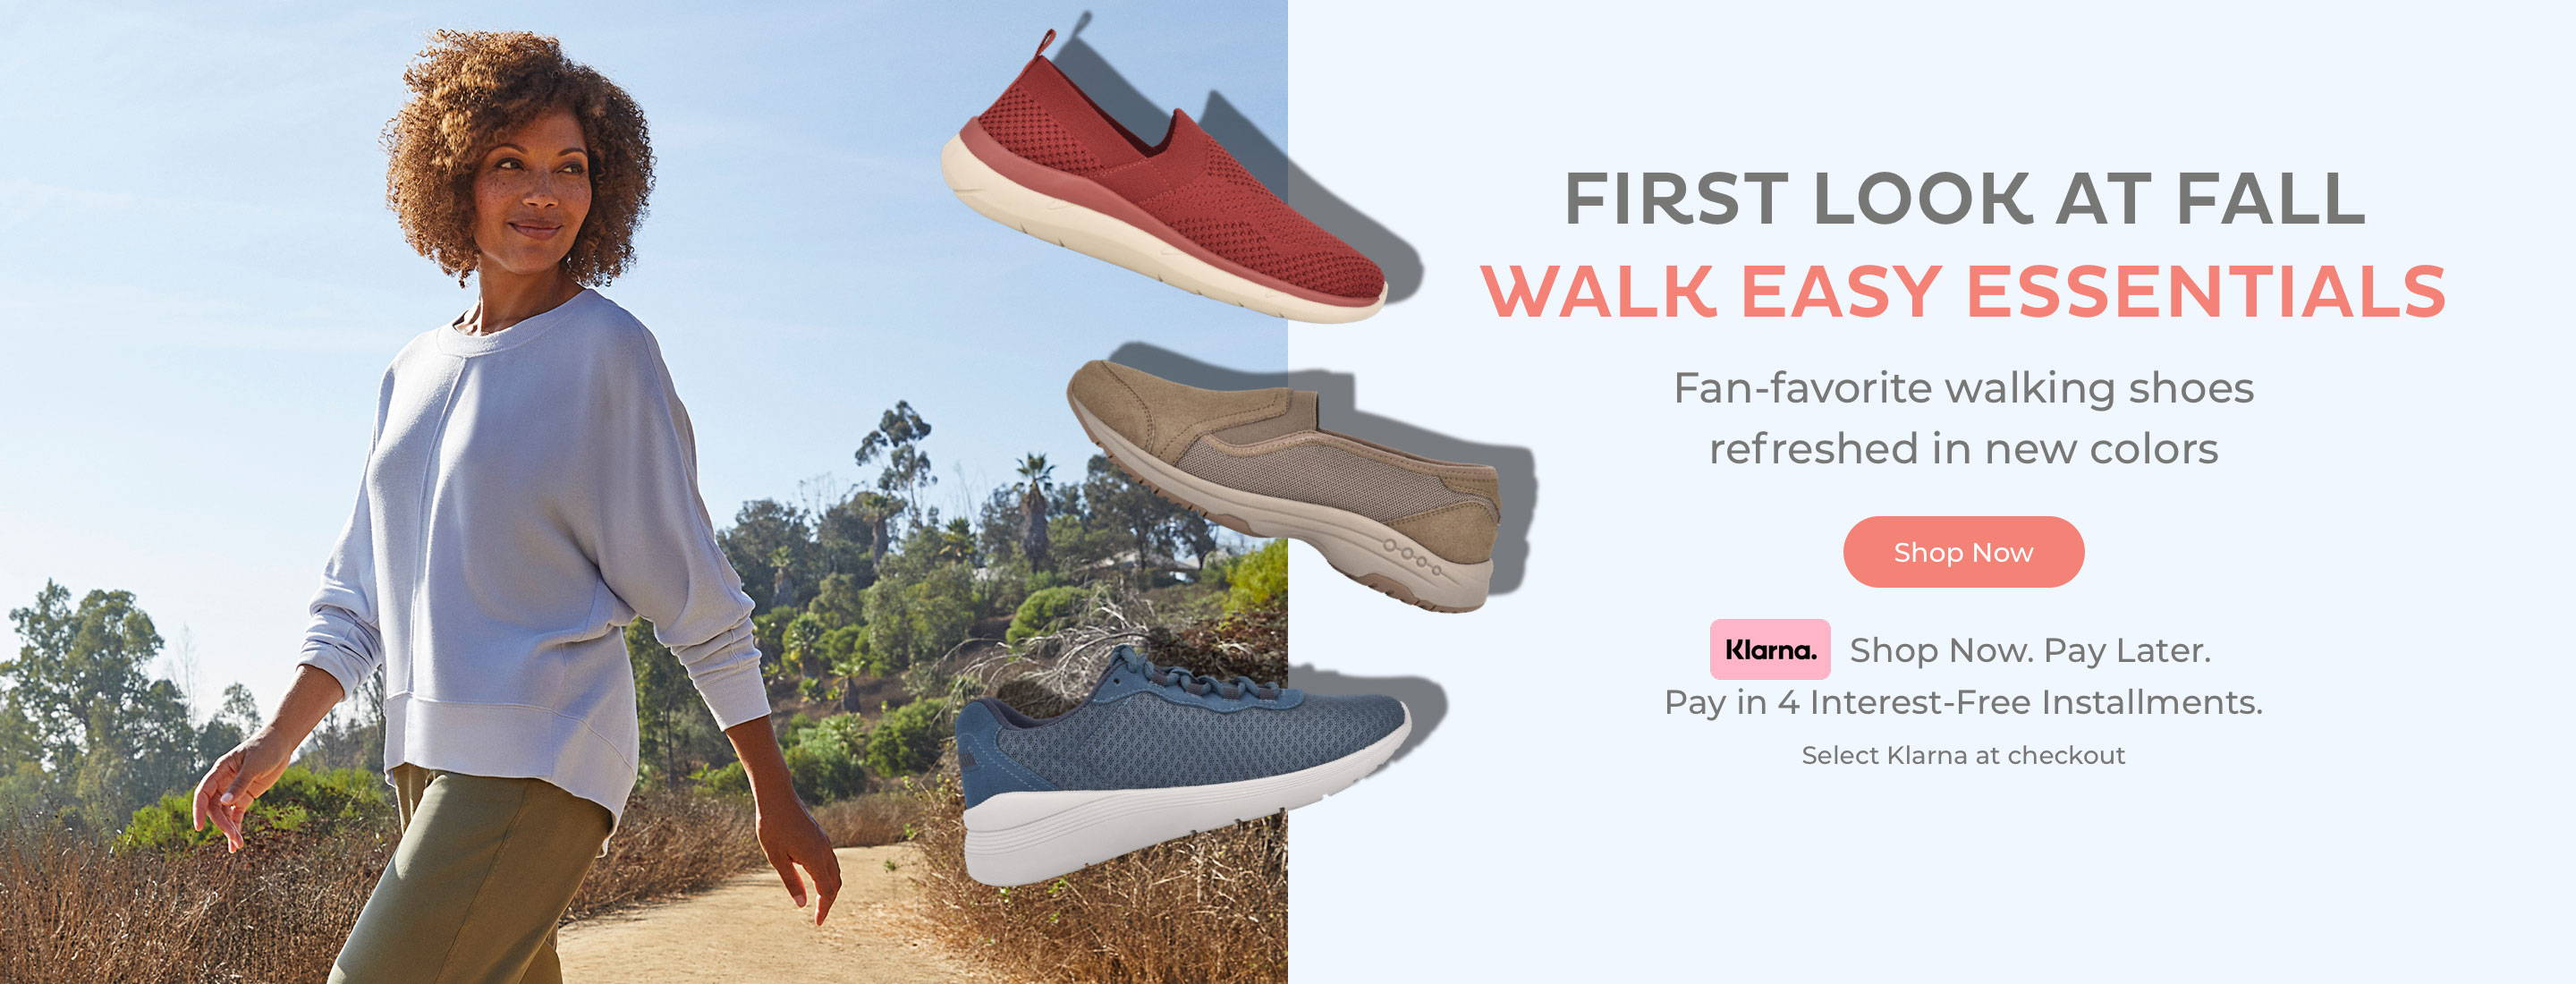 Walk Easy Essentials